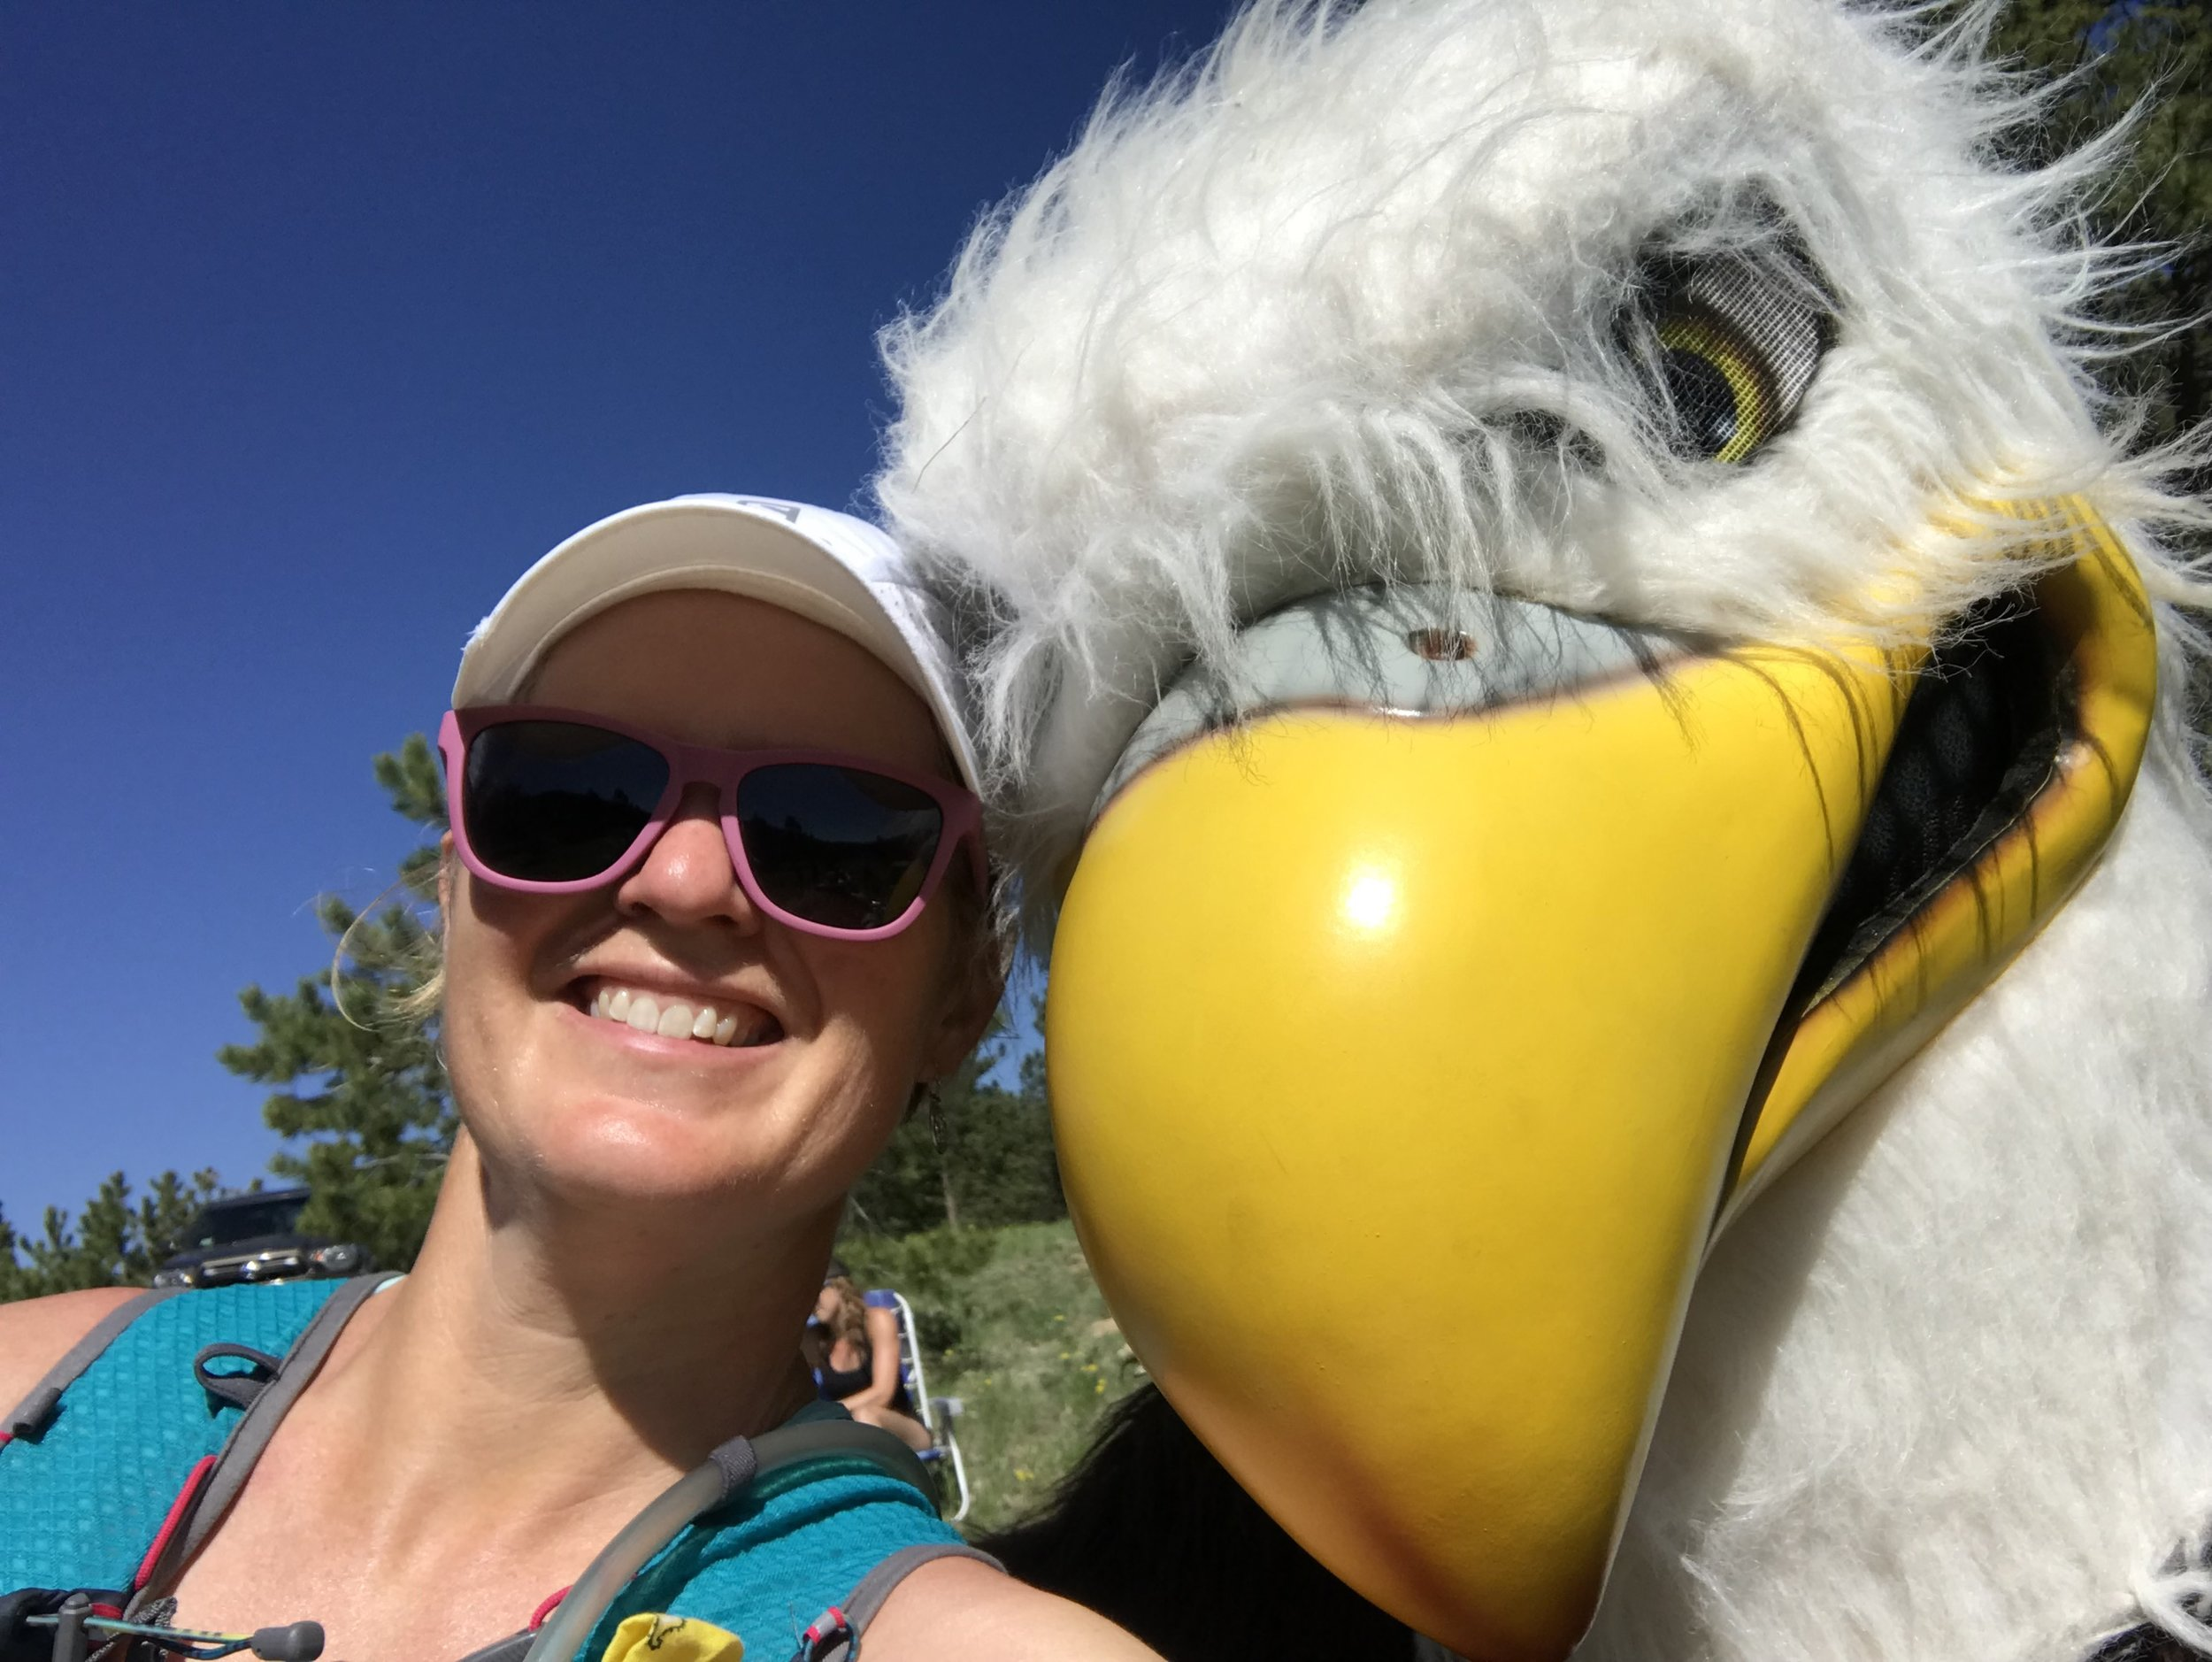 Happiest selfie with an eagle ever!